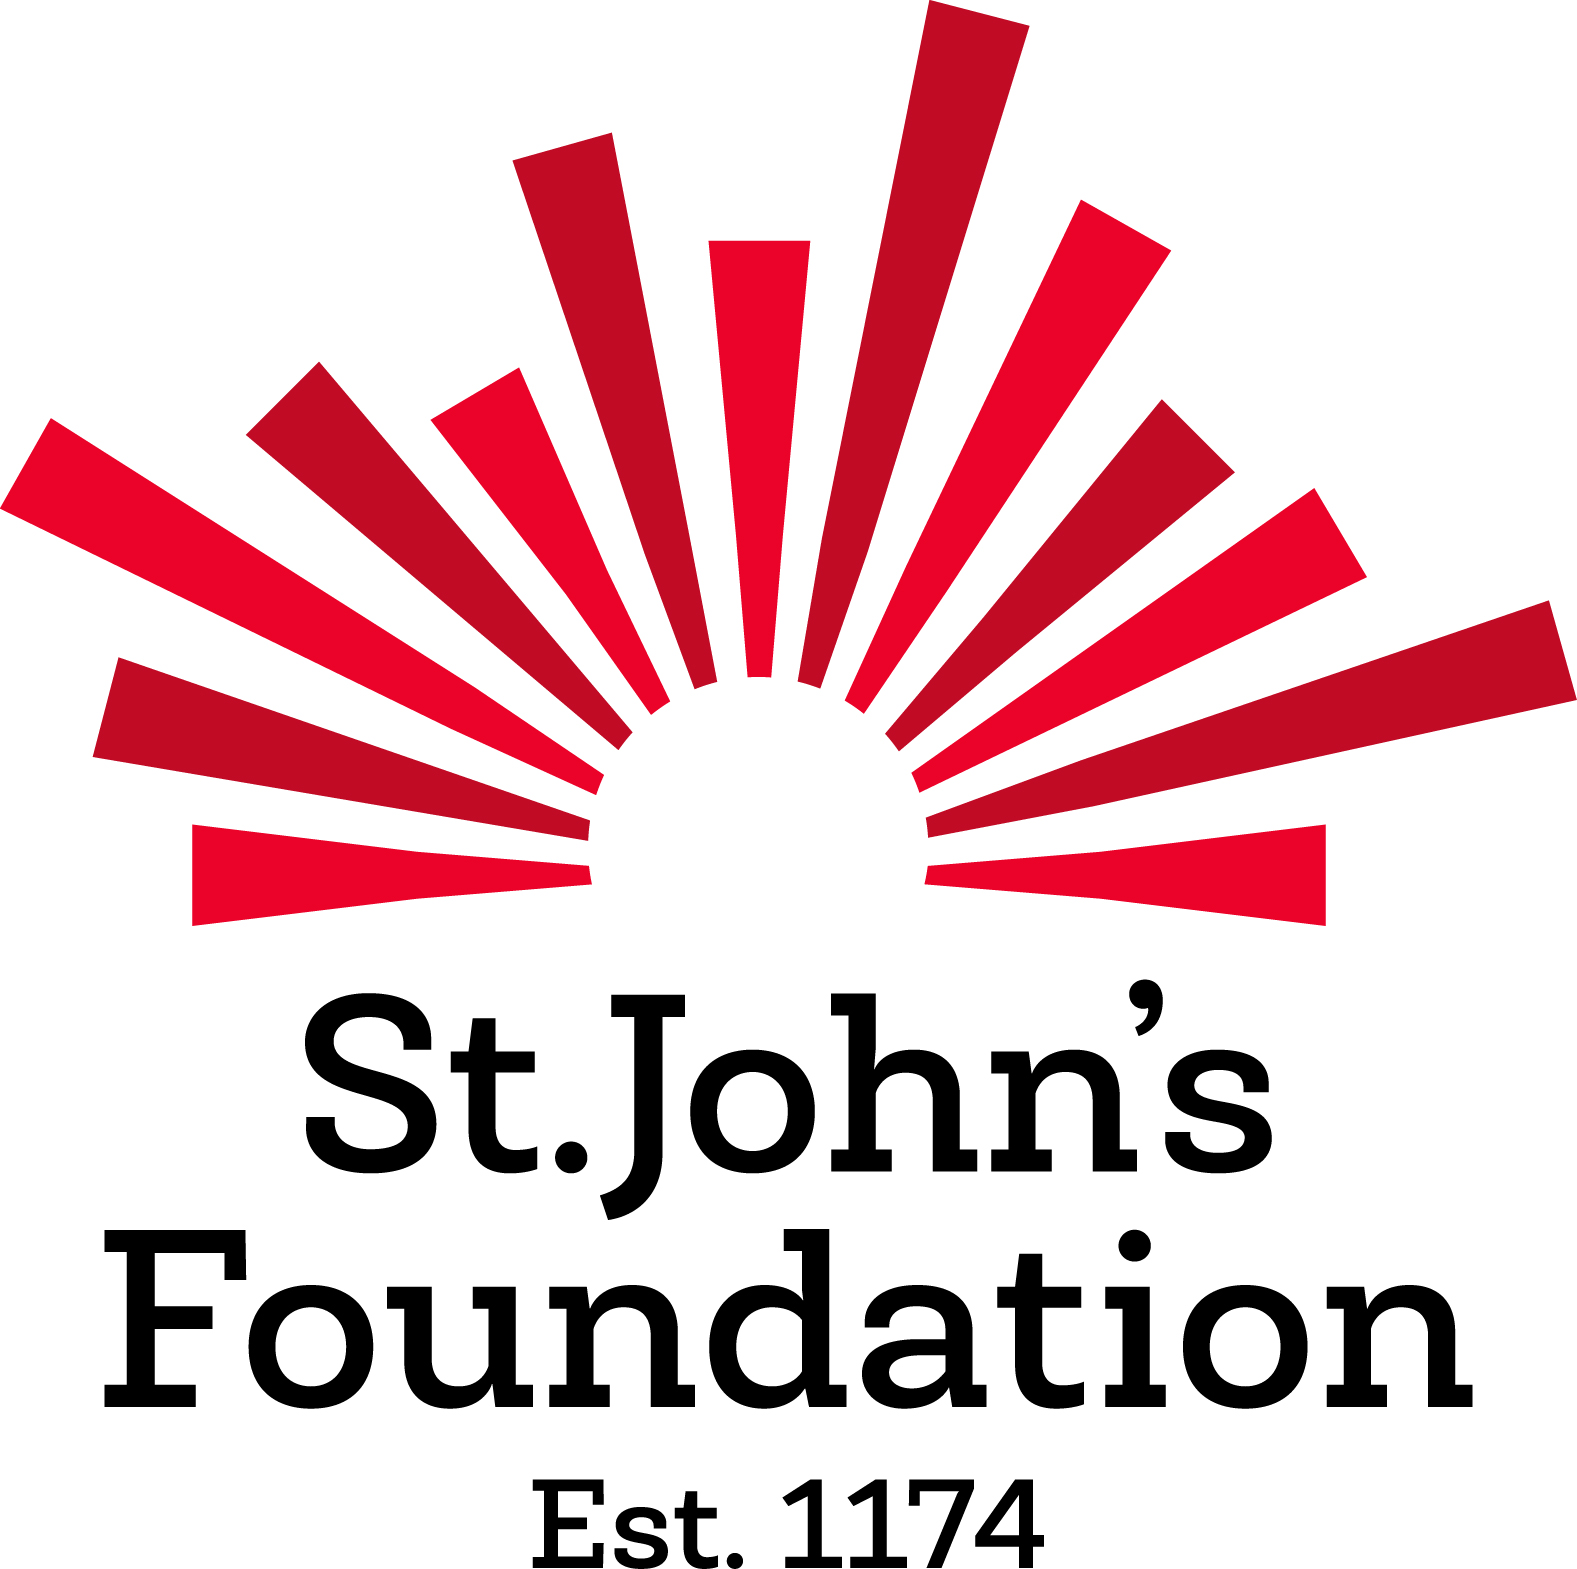 St. John's Foundation Logo